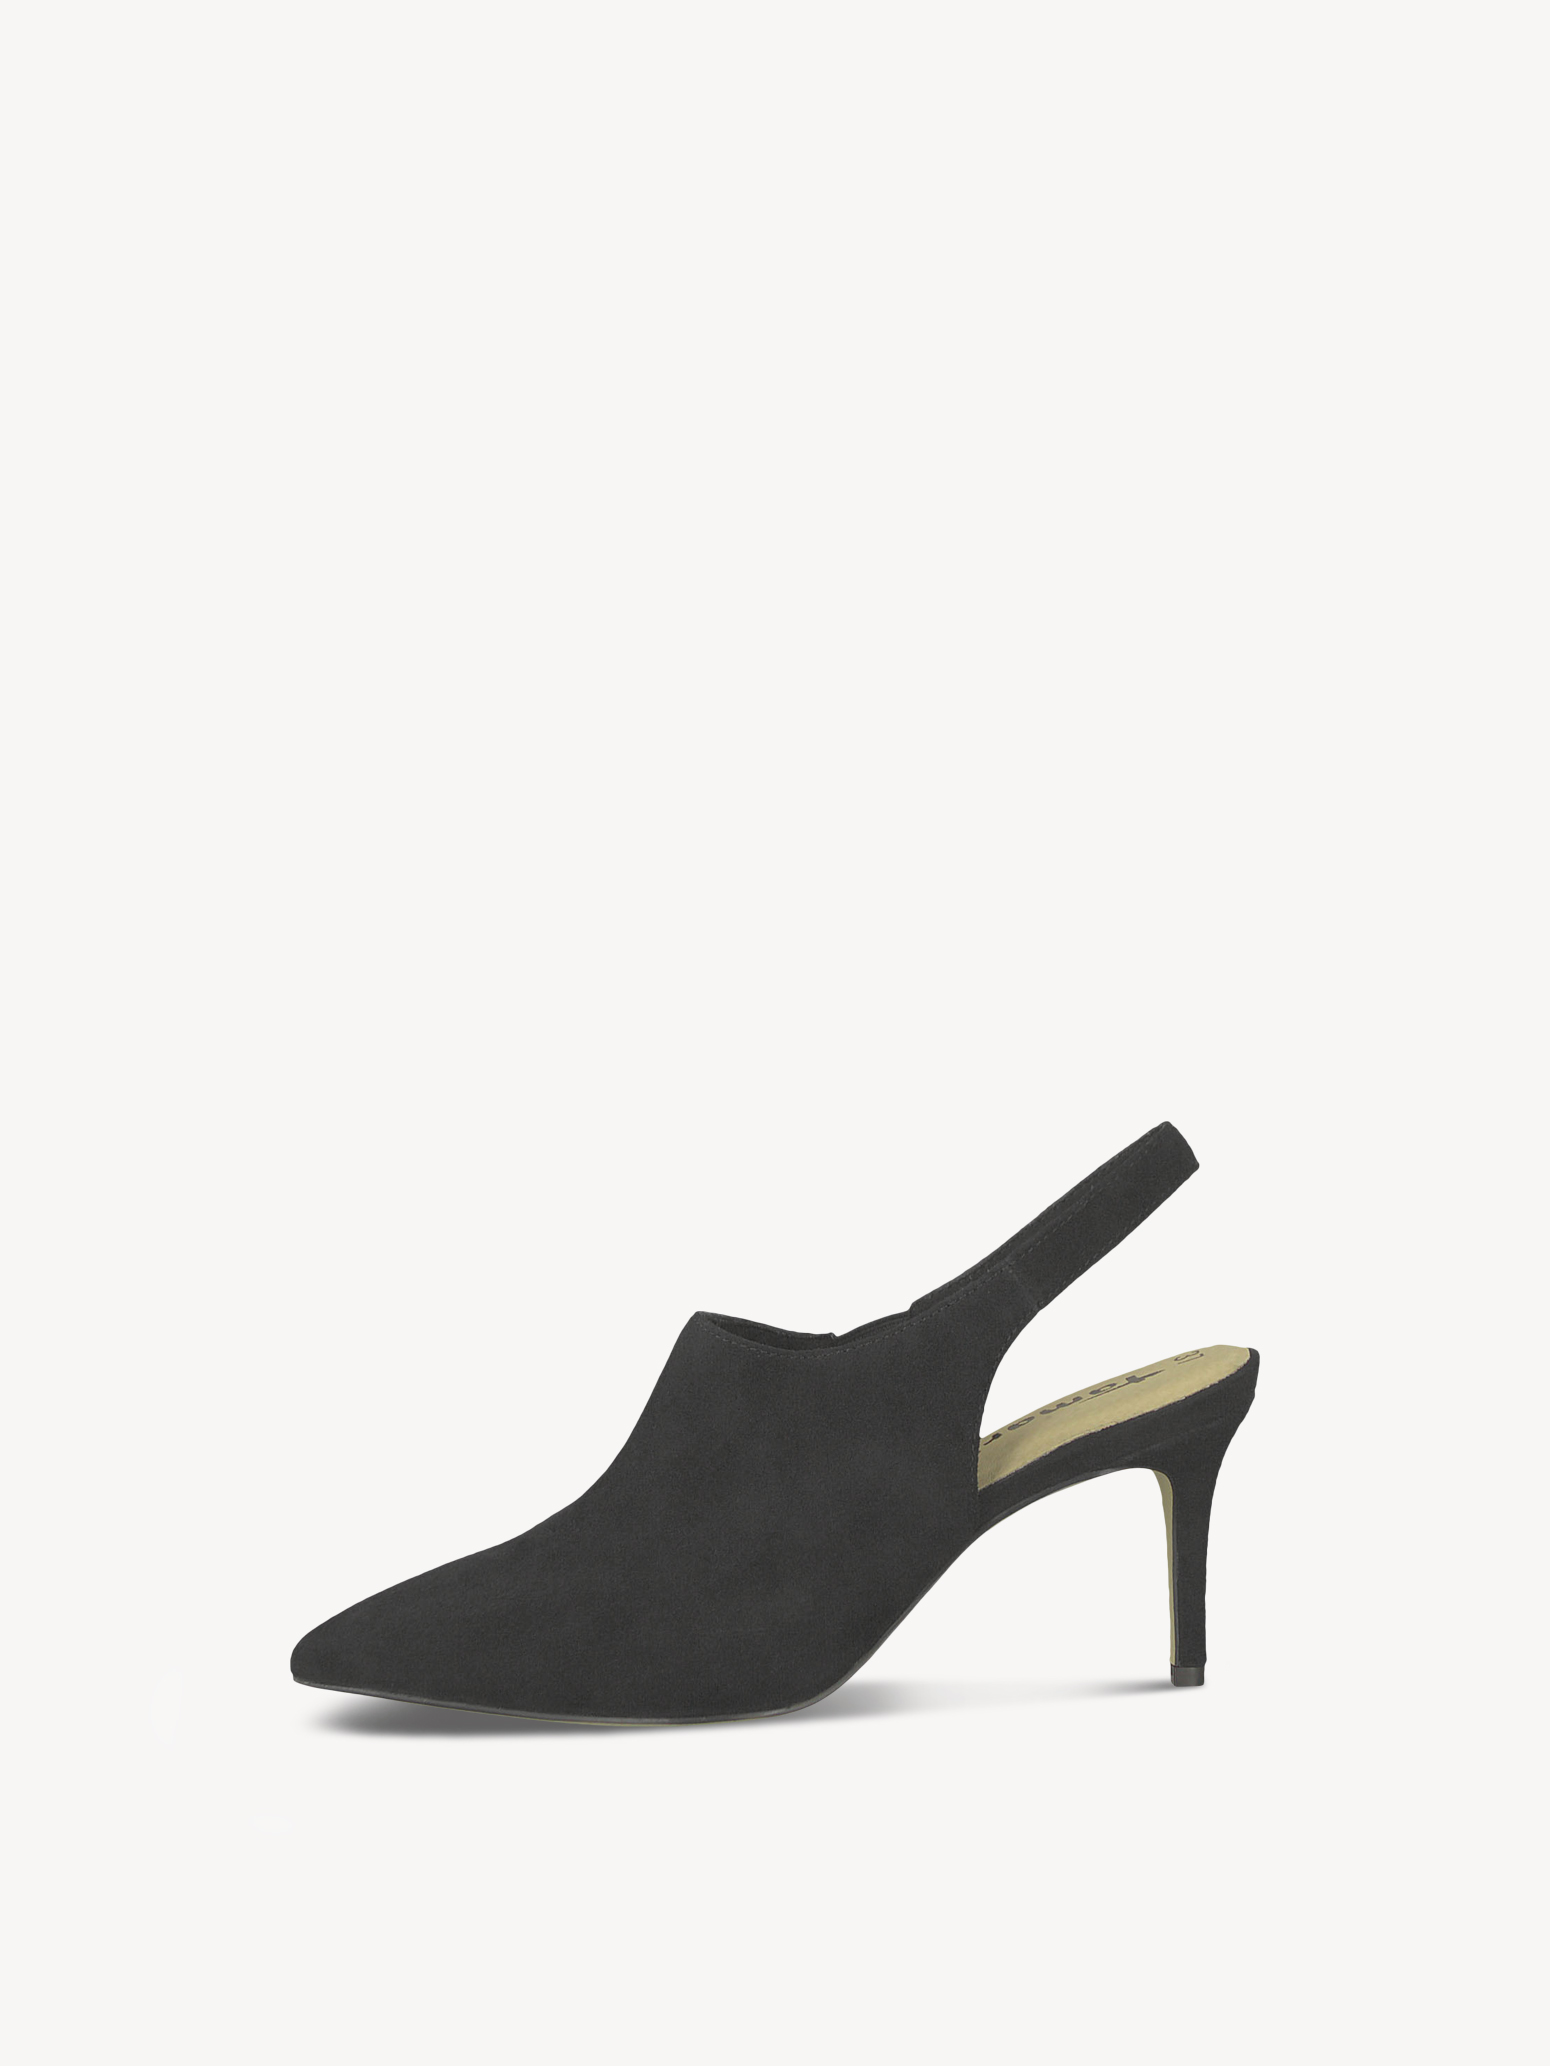 Leather sling pumps - black, BLACK, hi-res